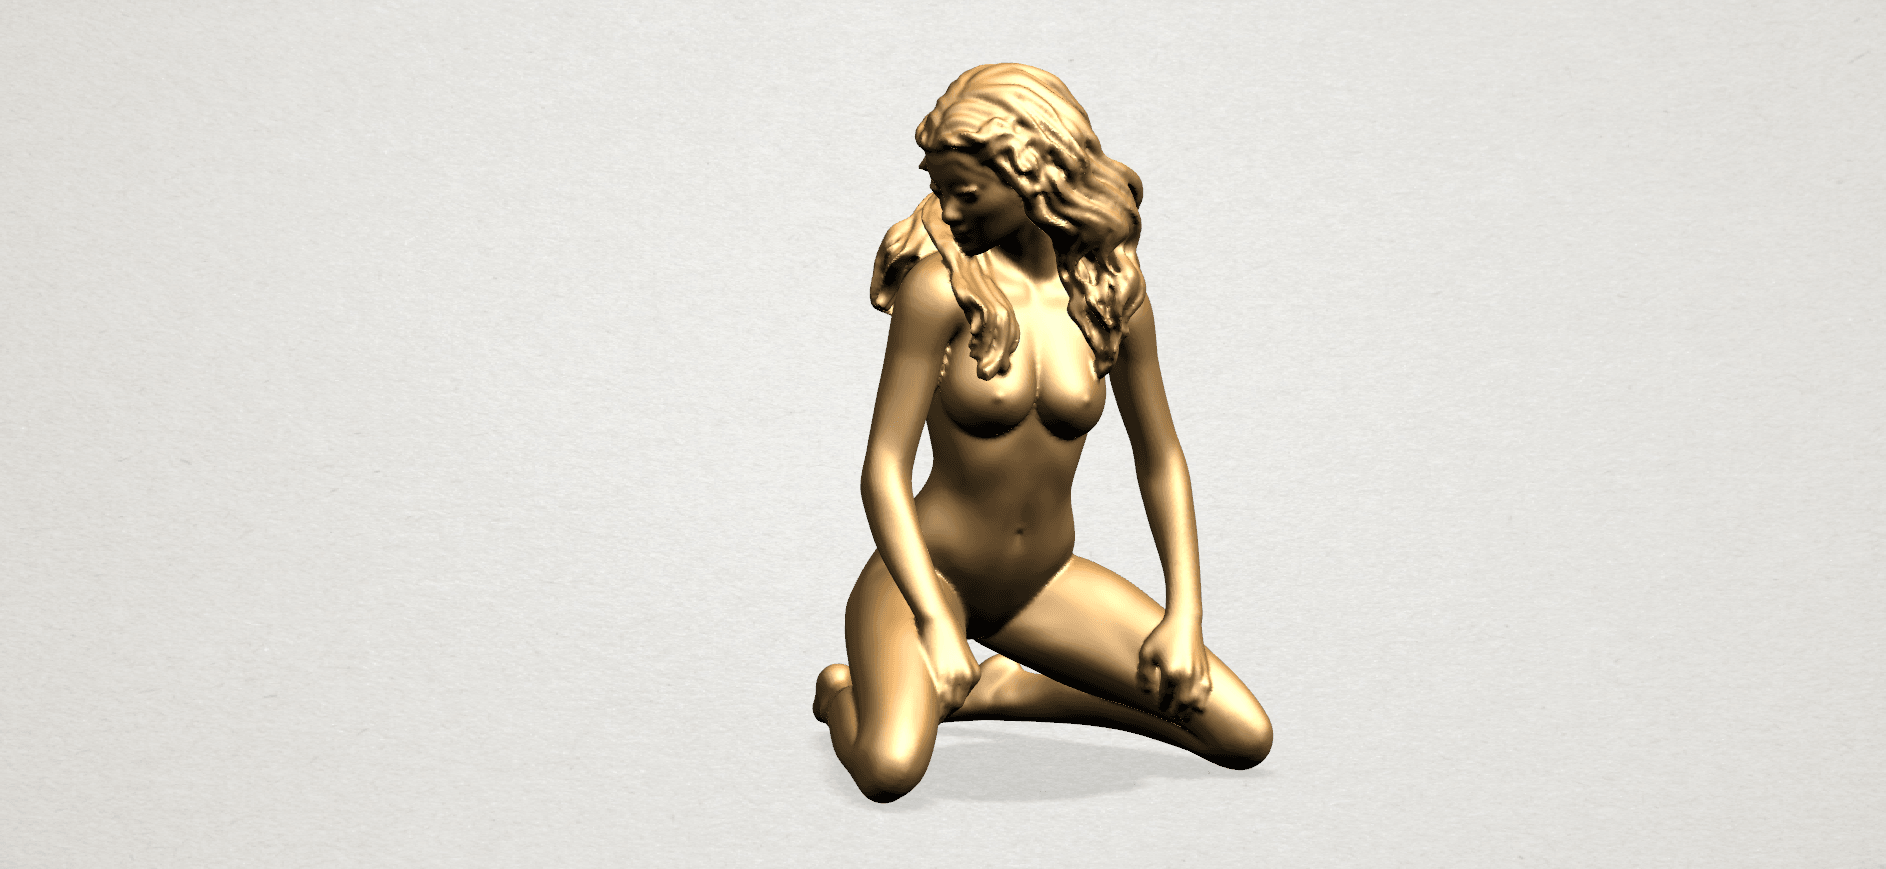 Naked girl - bended knees (II)-B01.png Download free STL file Naked girl - Bended Knees 02 -TOP MODEL • 3D printing object, GeorgesNikkei